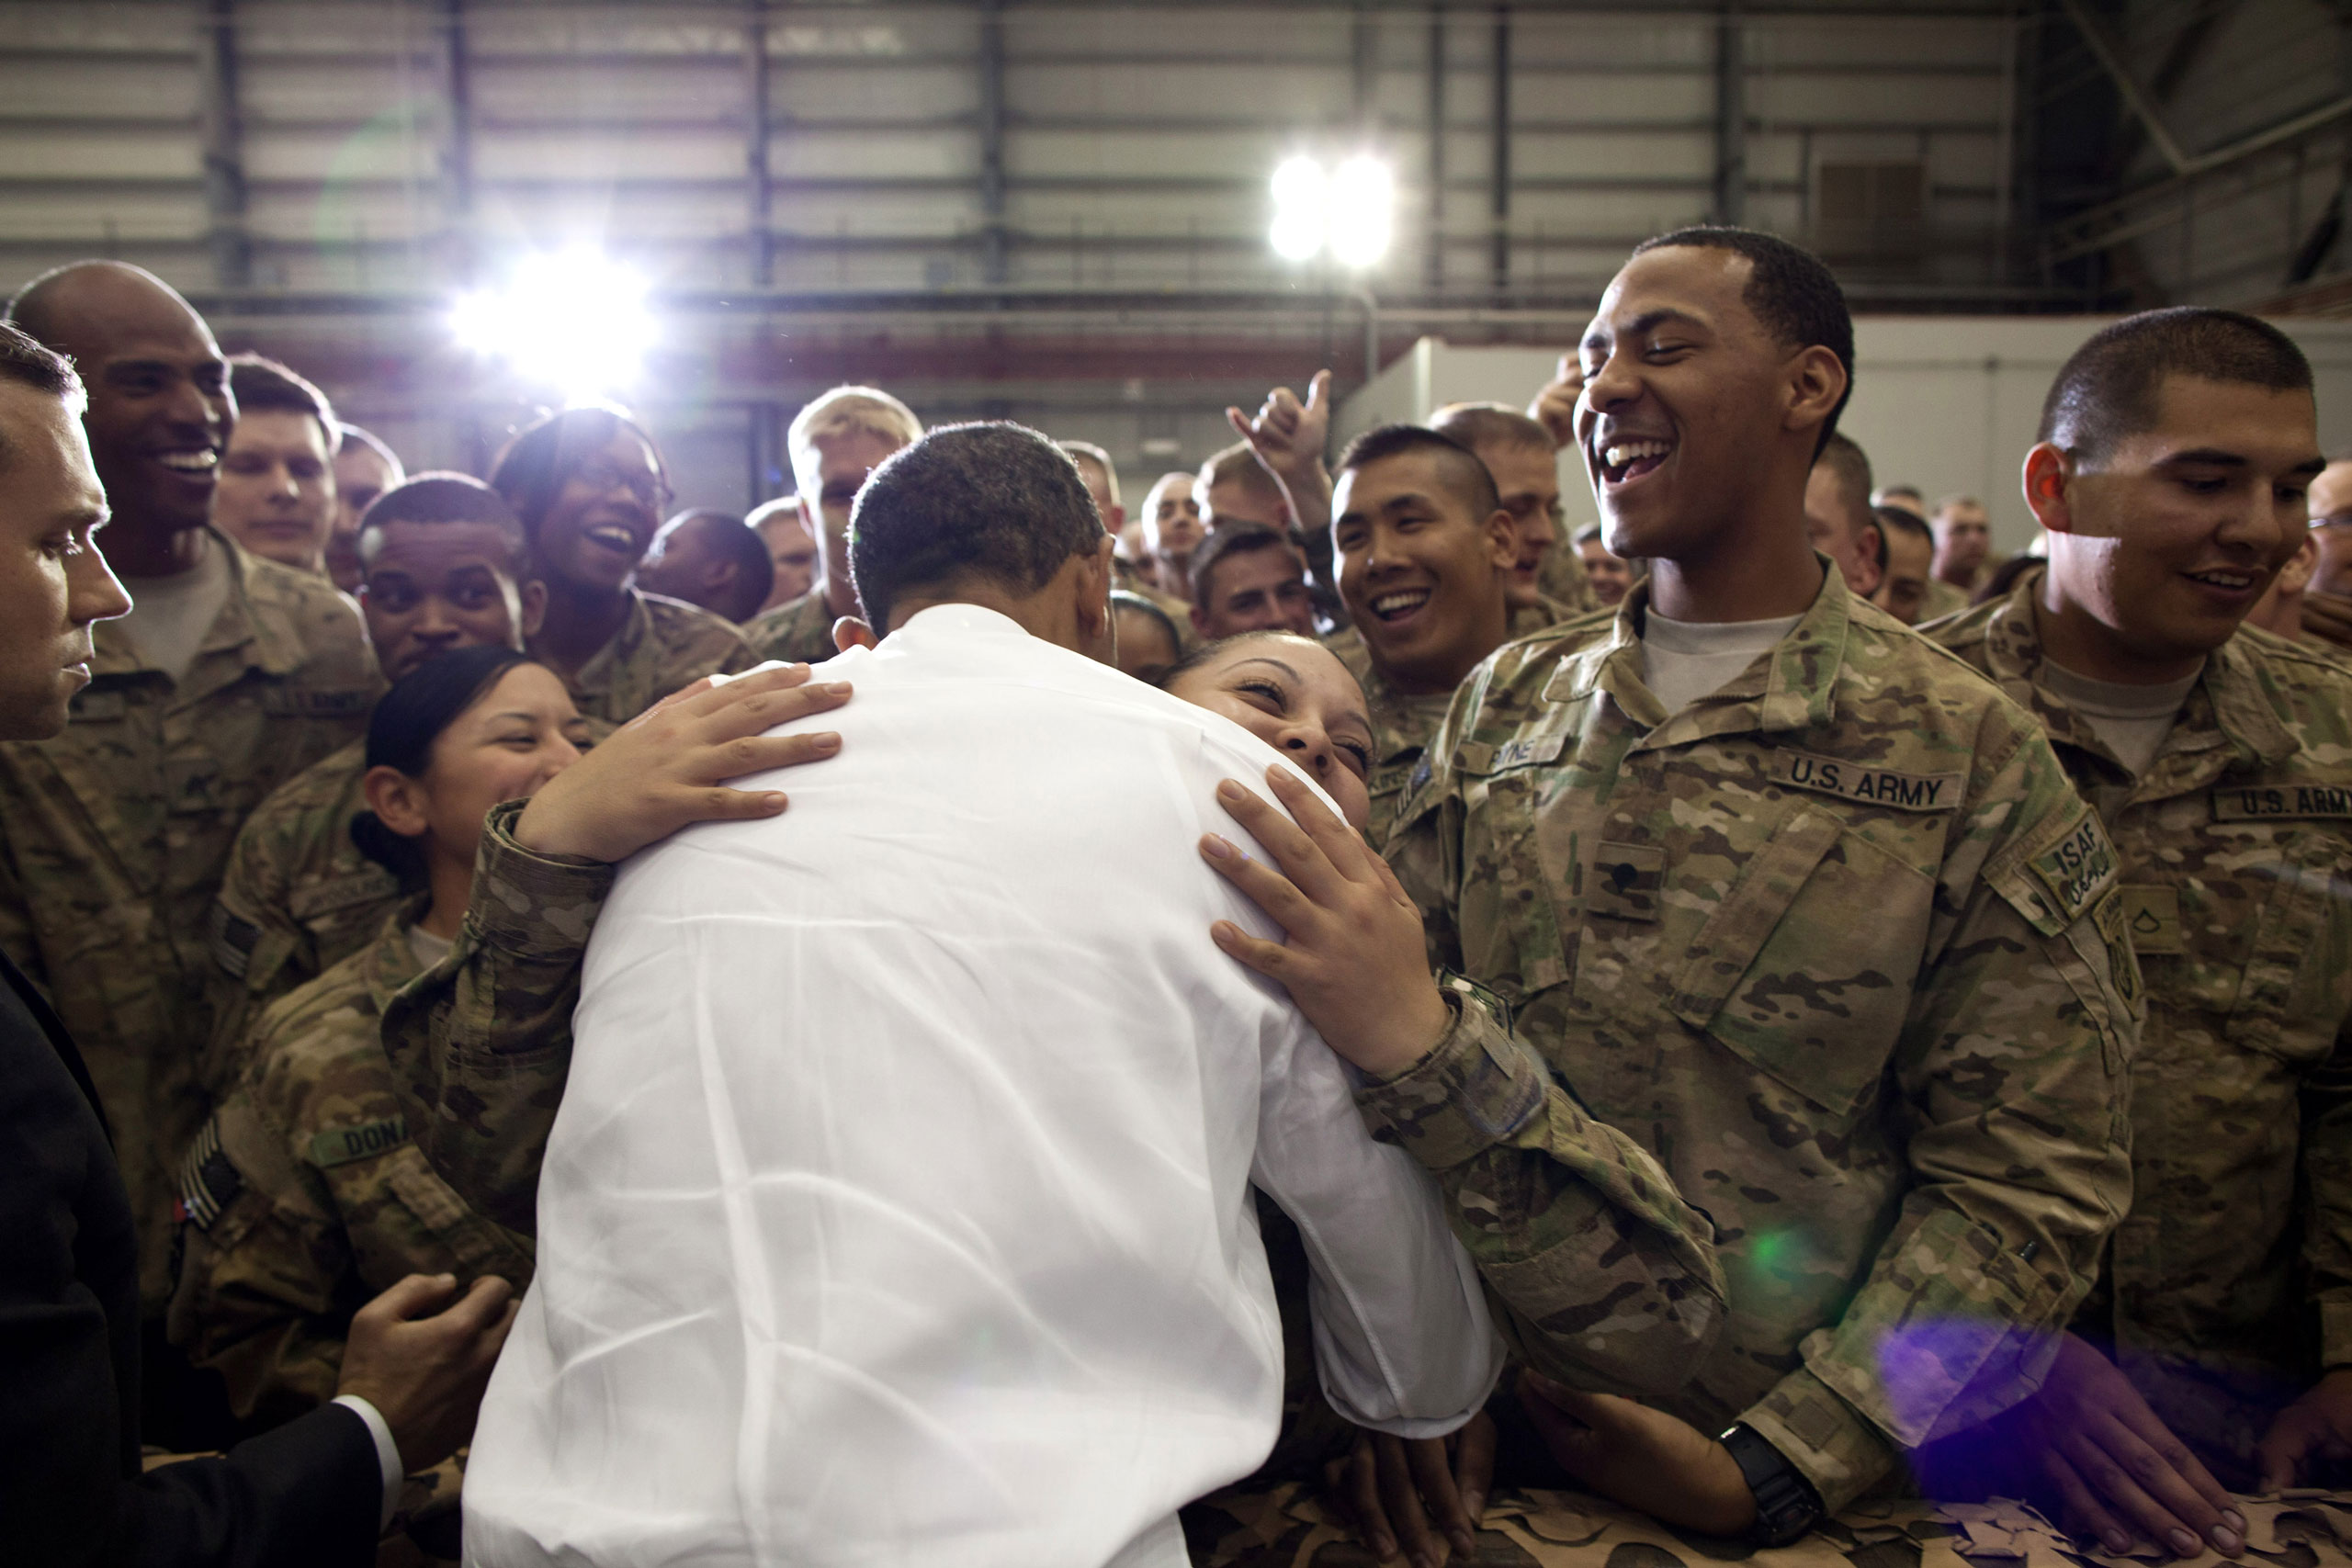 President Obama greets U.S. troops following his remarks during an unannounced trip to Bagram Air Field, Afghanistan, May 1, 2012. The President made three trips around the ropeline to try and shake every hand.